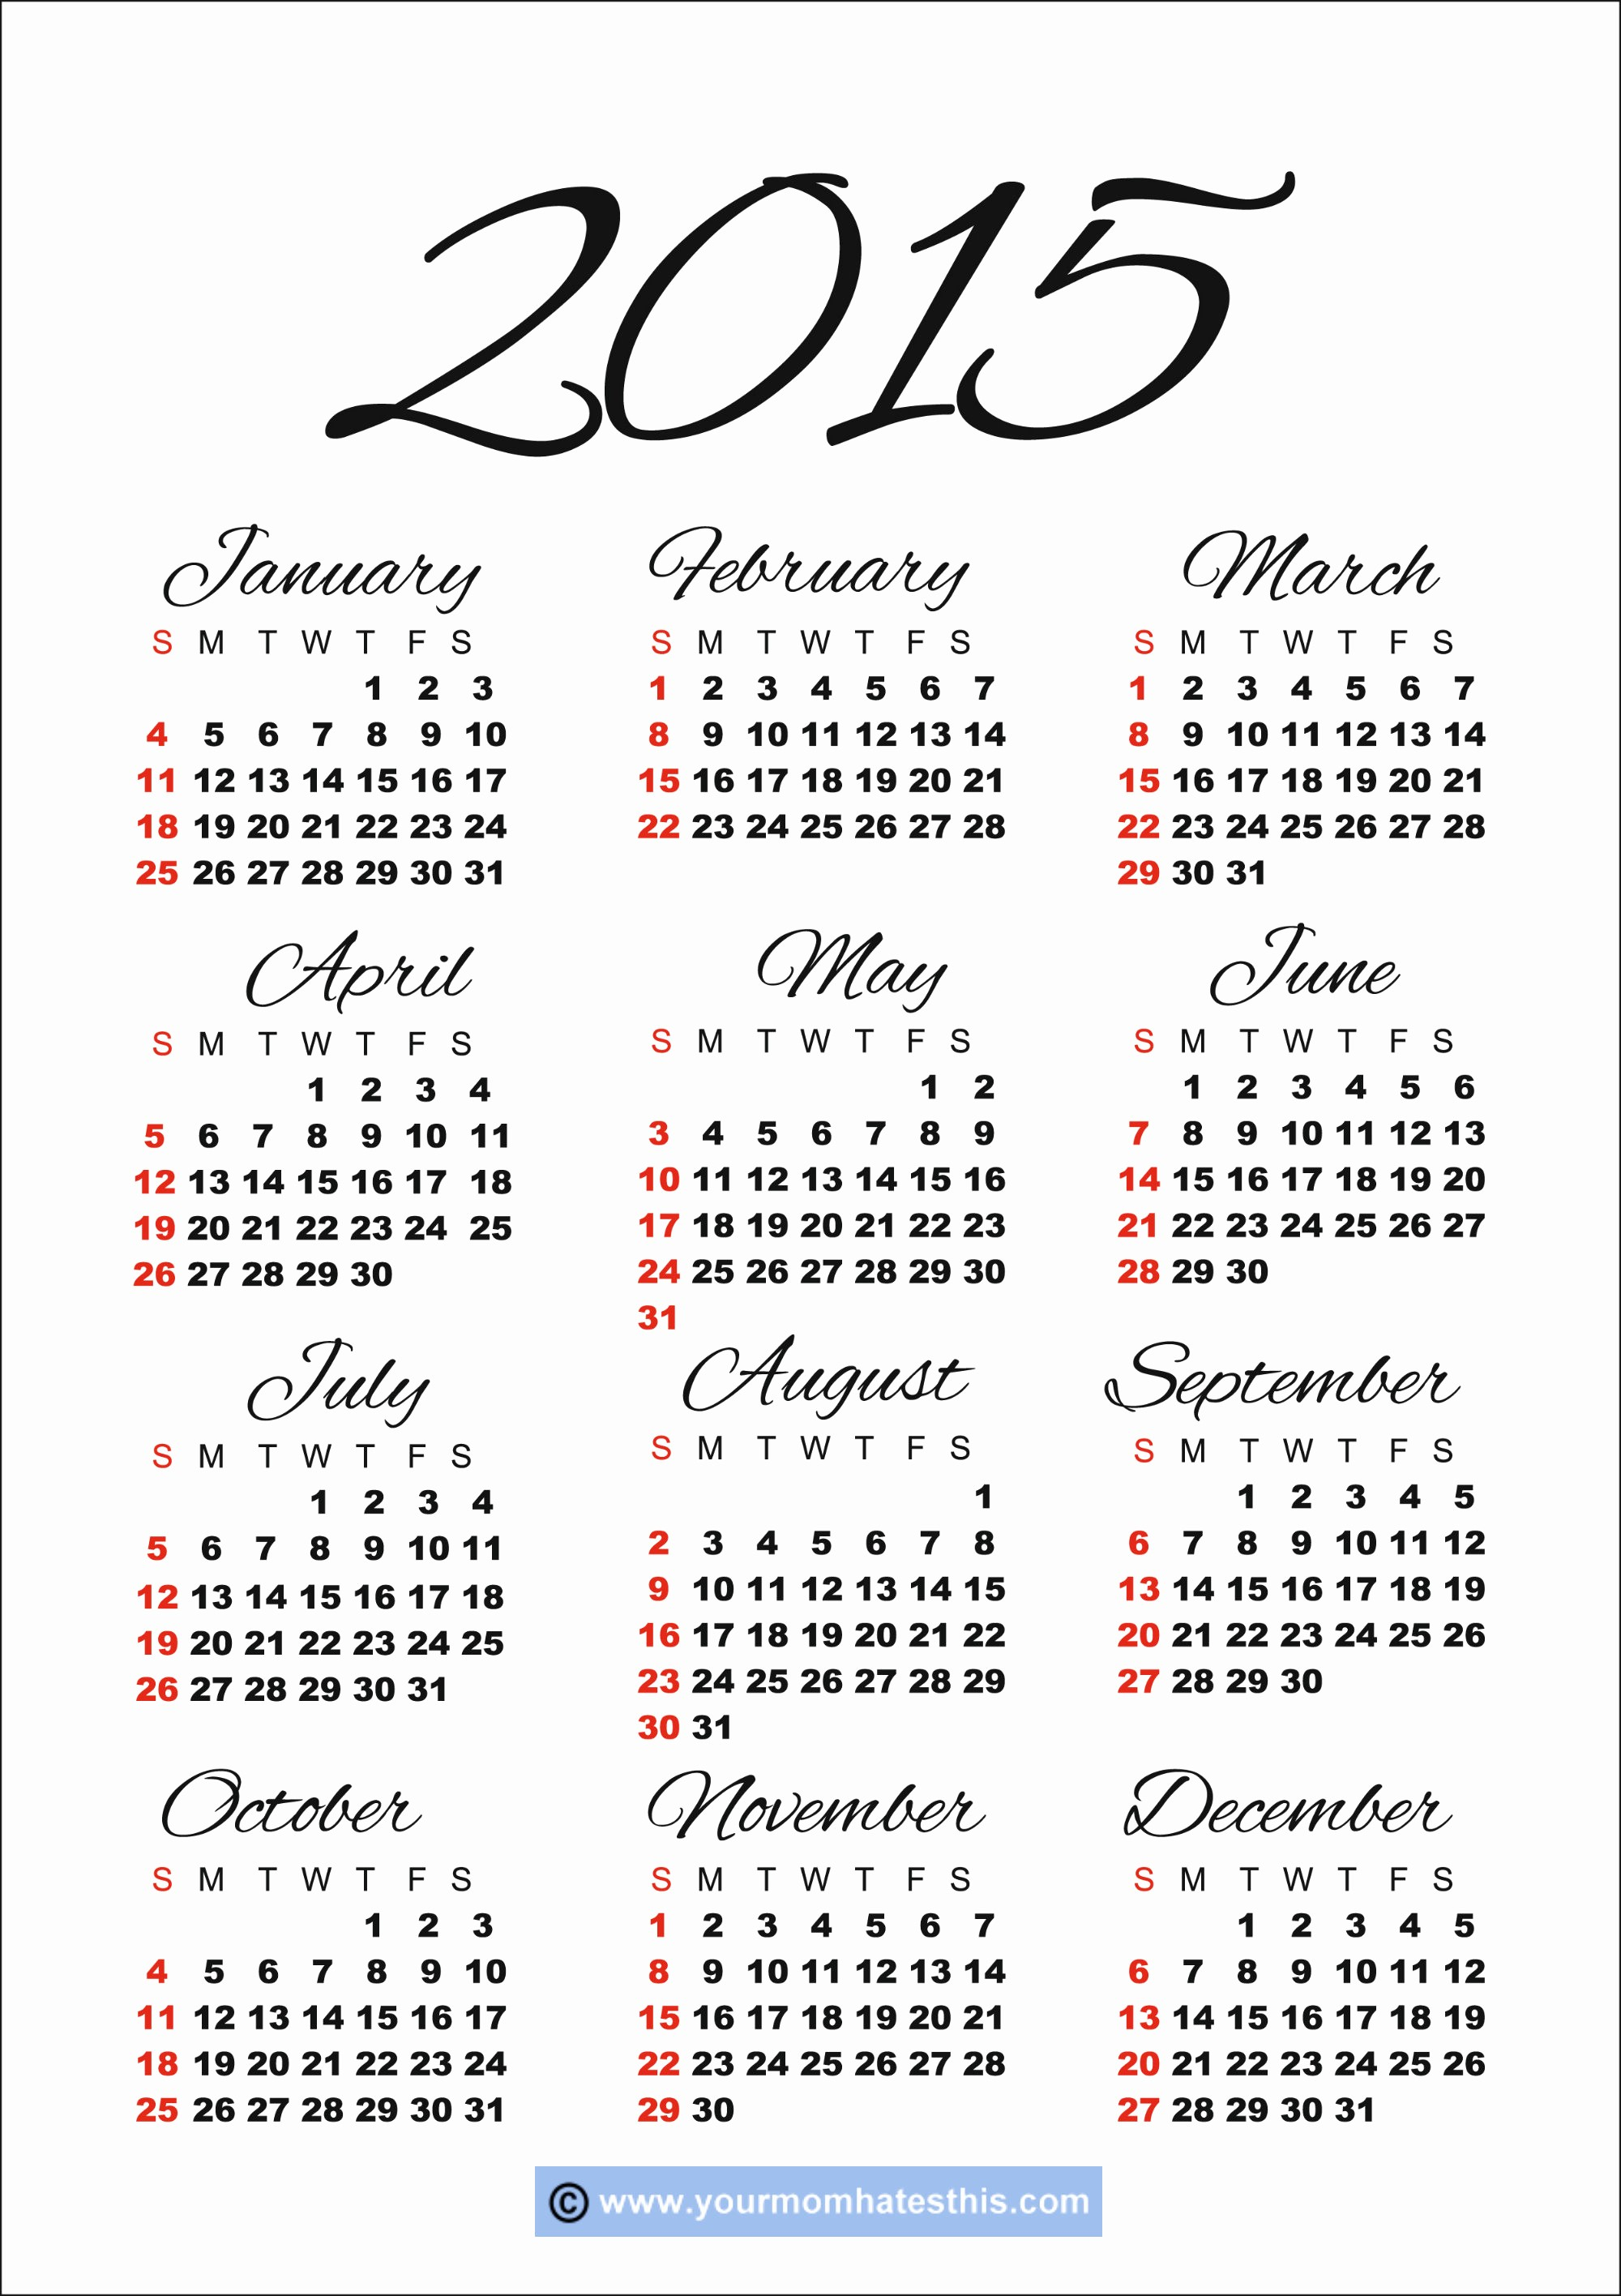 Calendar 2015 Printable with Holidays Inspirational Download Printable 2015 Calendar